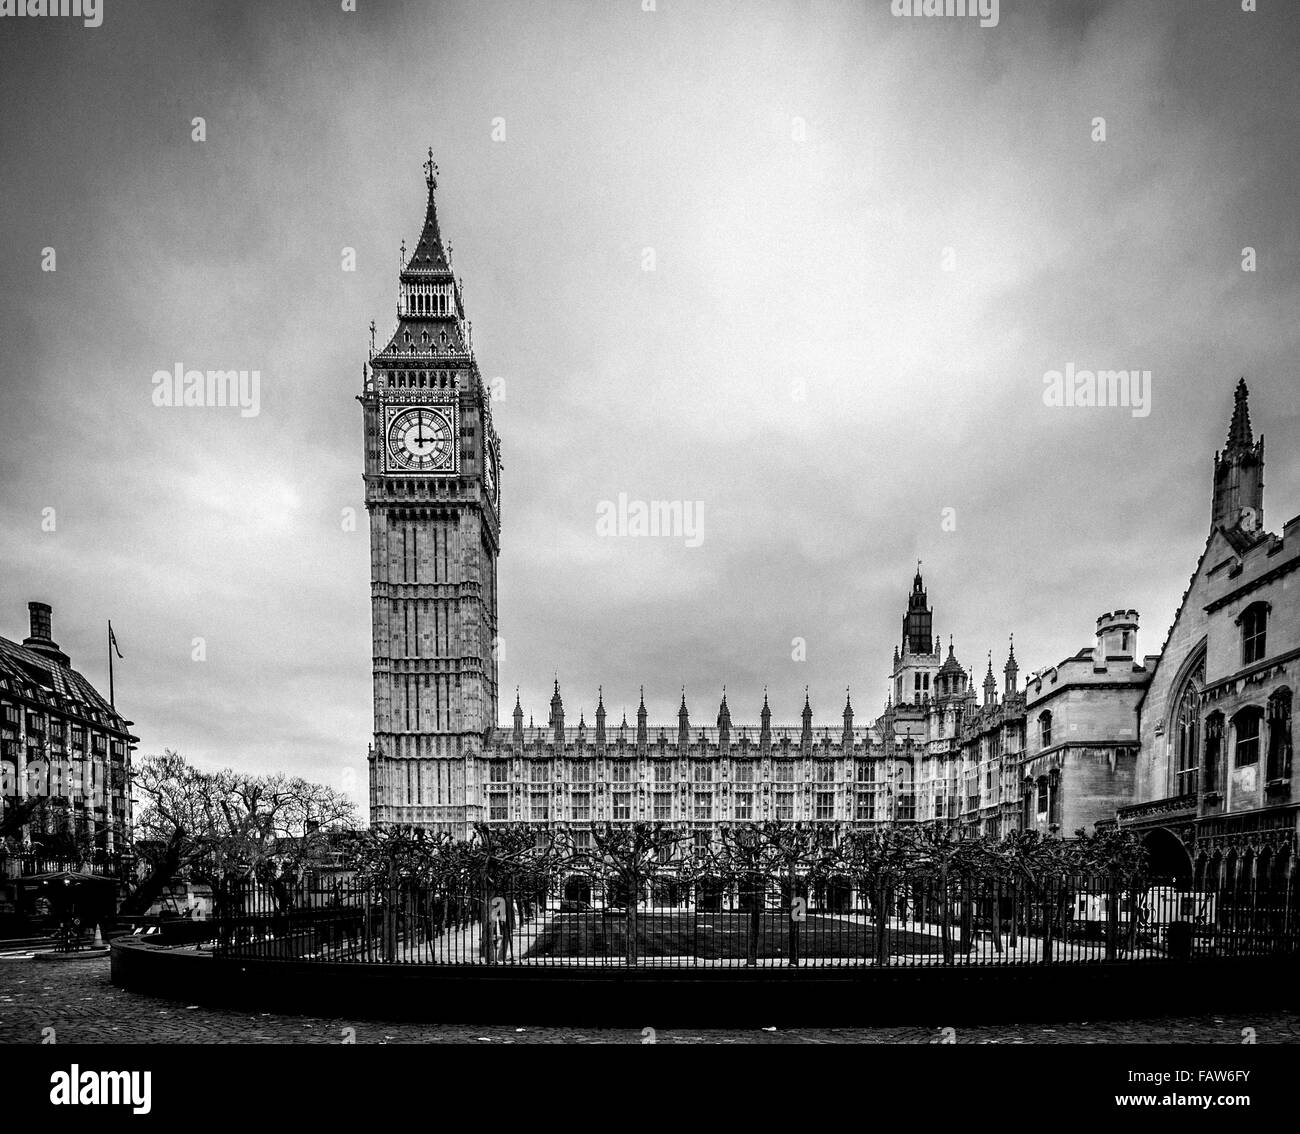 Big Ben and the Houses of Parliament, London, UK. - Stock Image